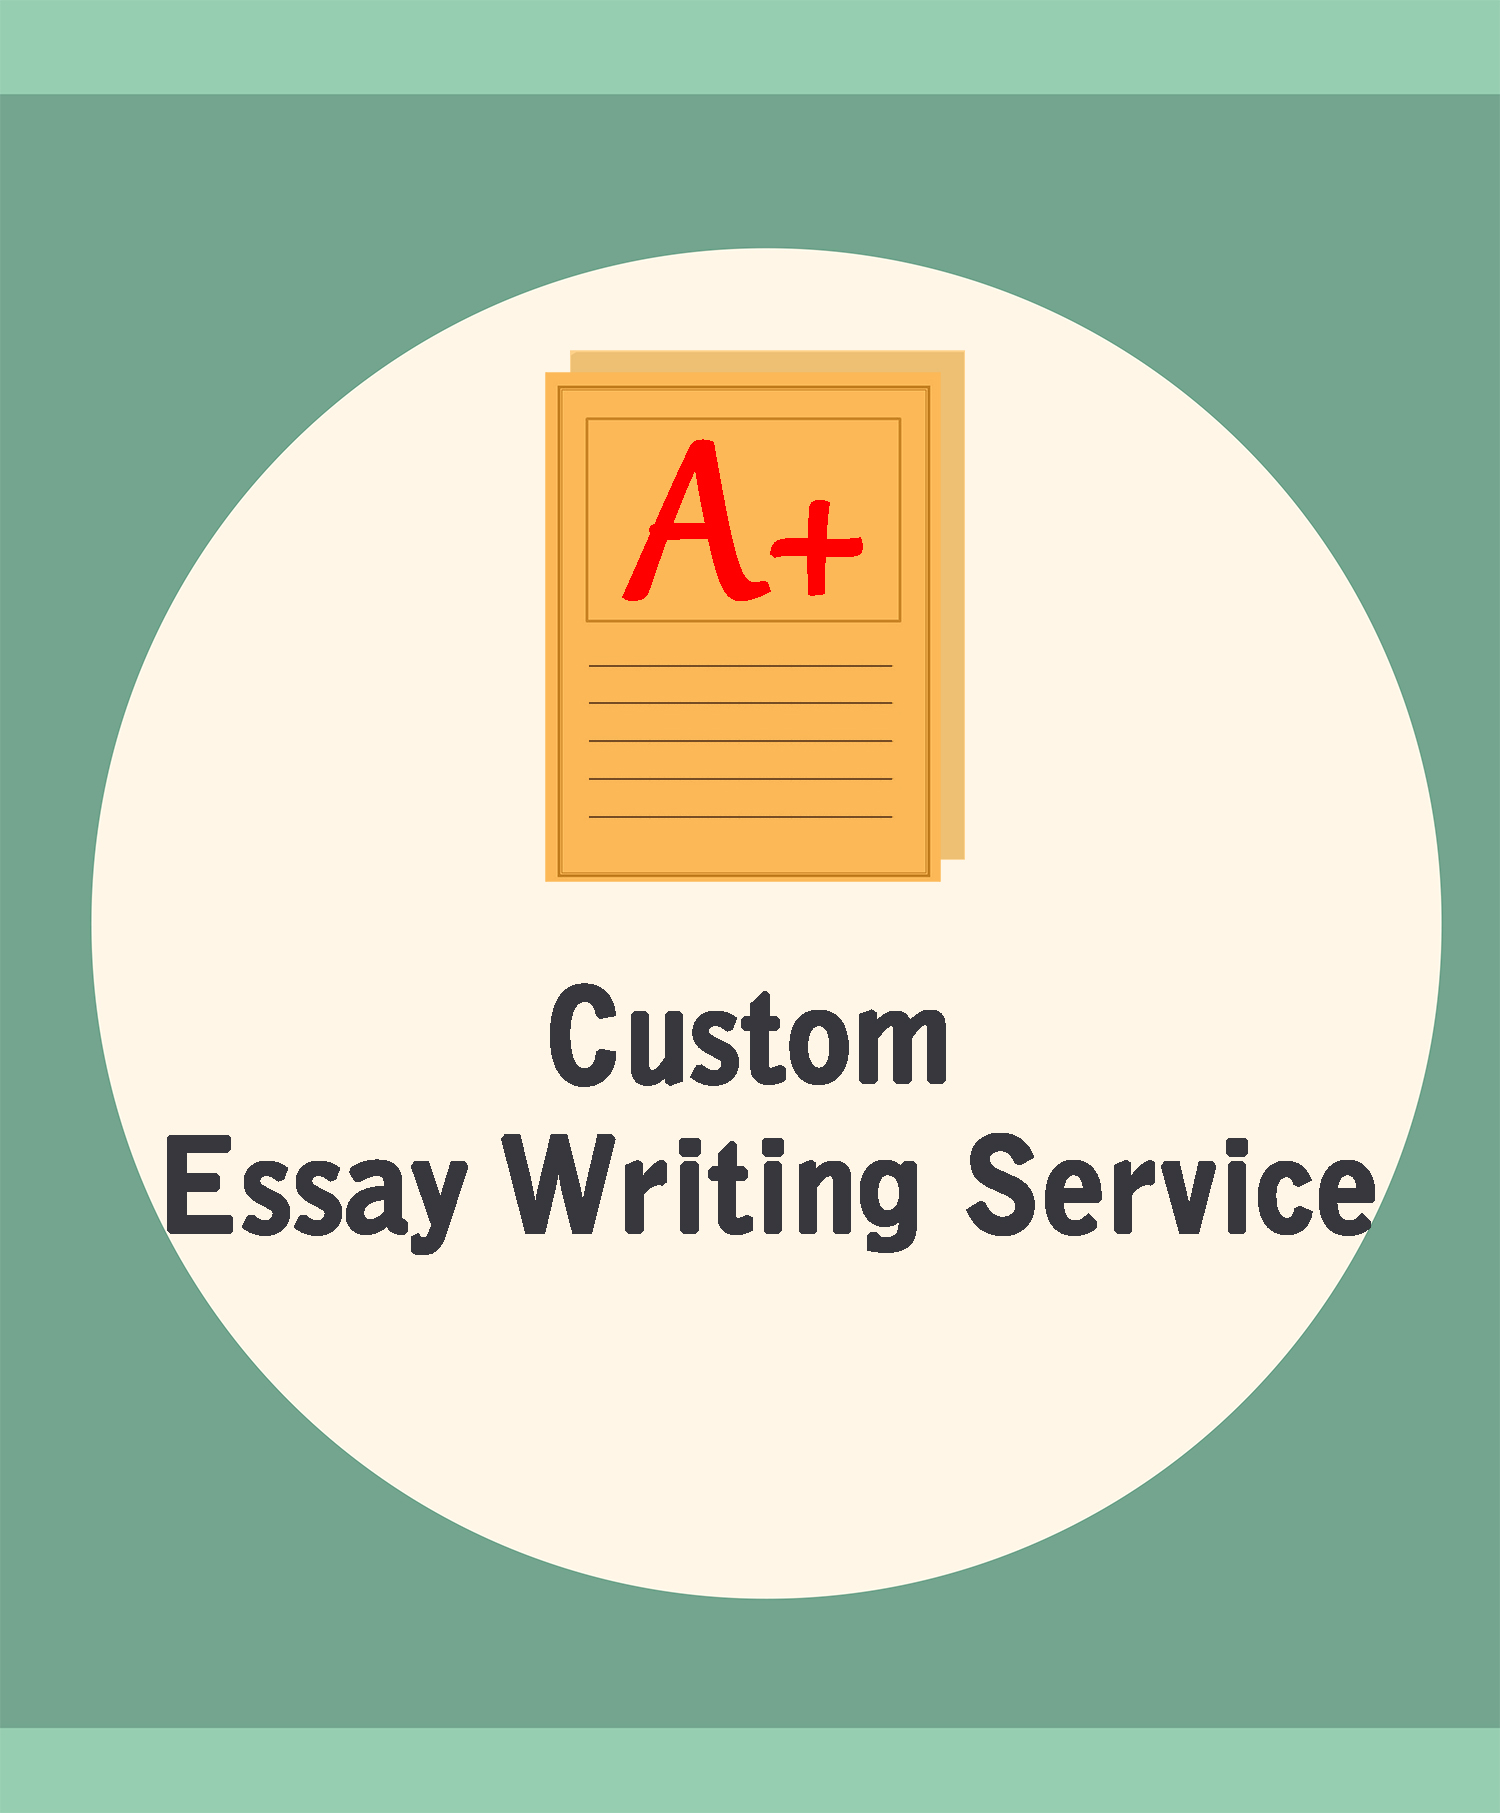 Online custom essay writing service video